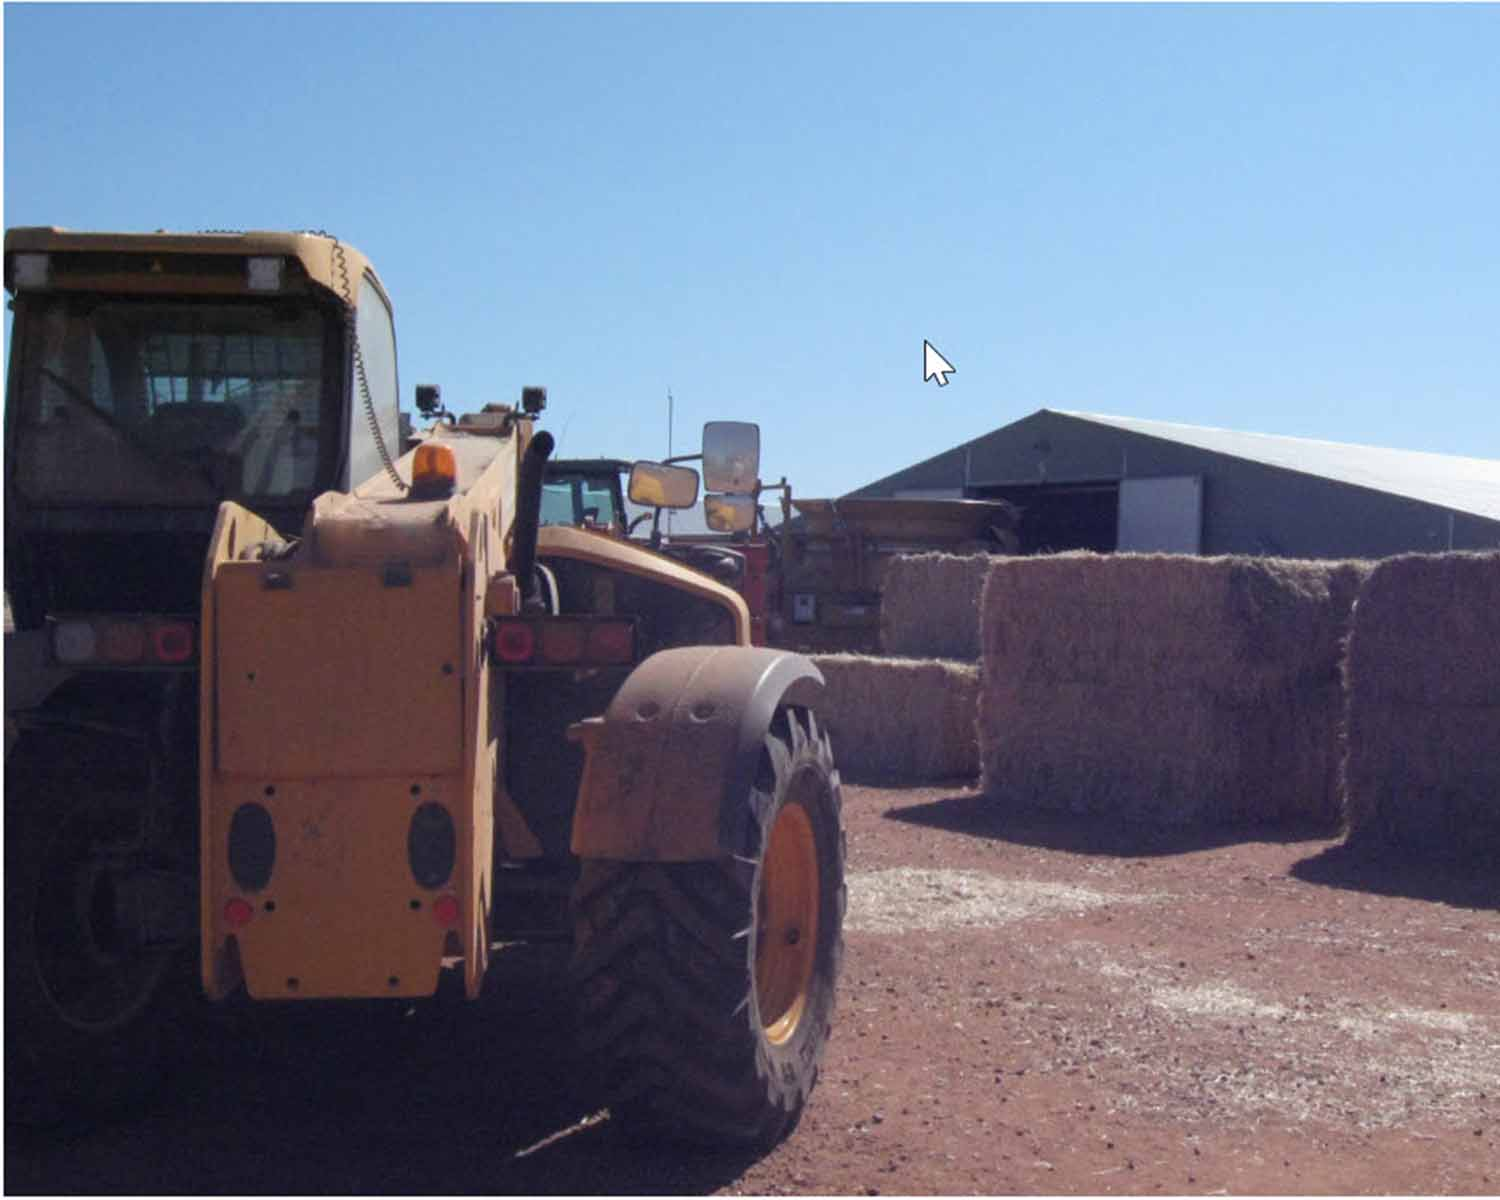 Location and telehandler involved in the incident